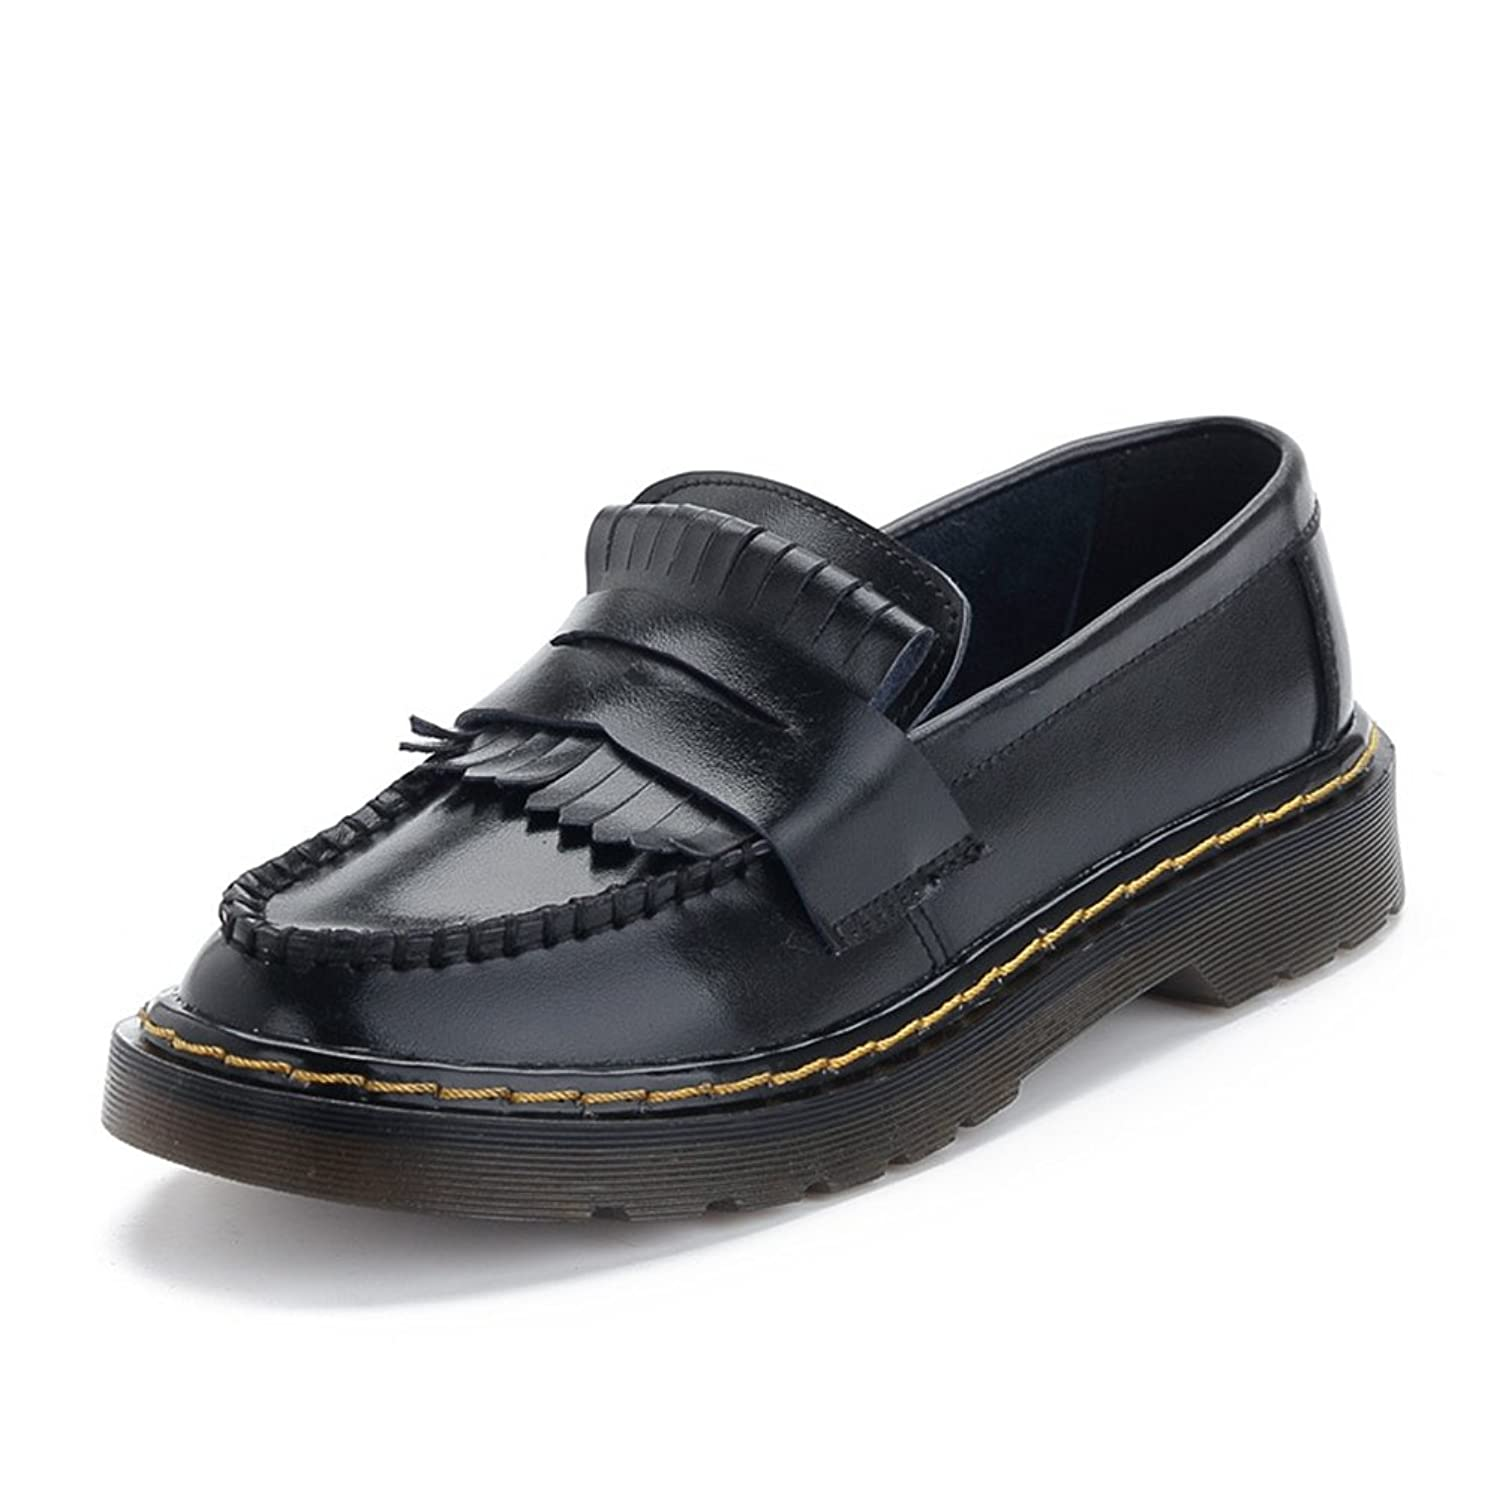 GIY Women Fashion Tassels Round Toe Low Flat Heel Slip-on Loafers Casual Oxford Shoes